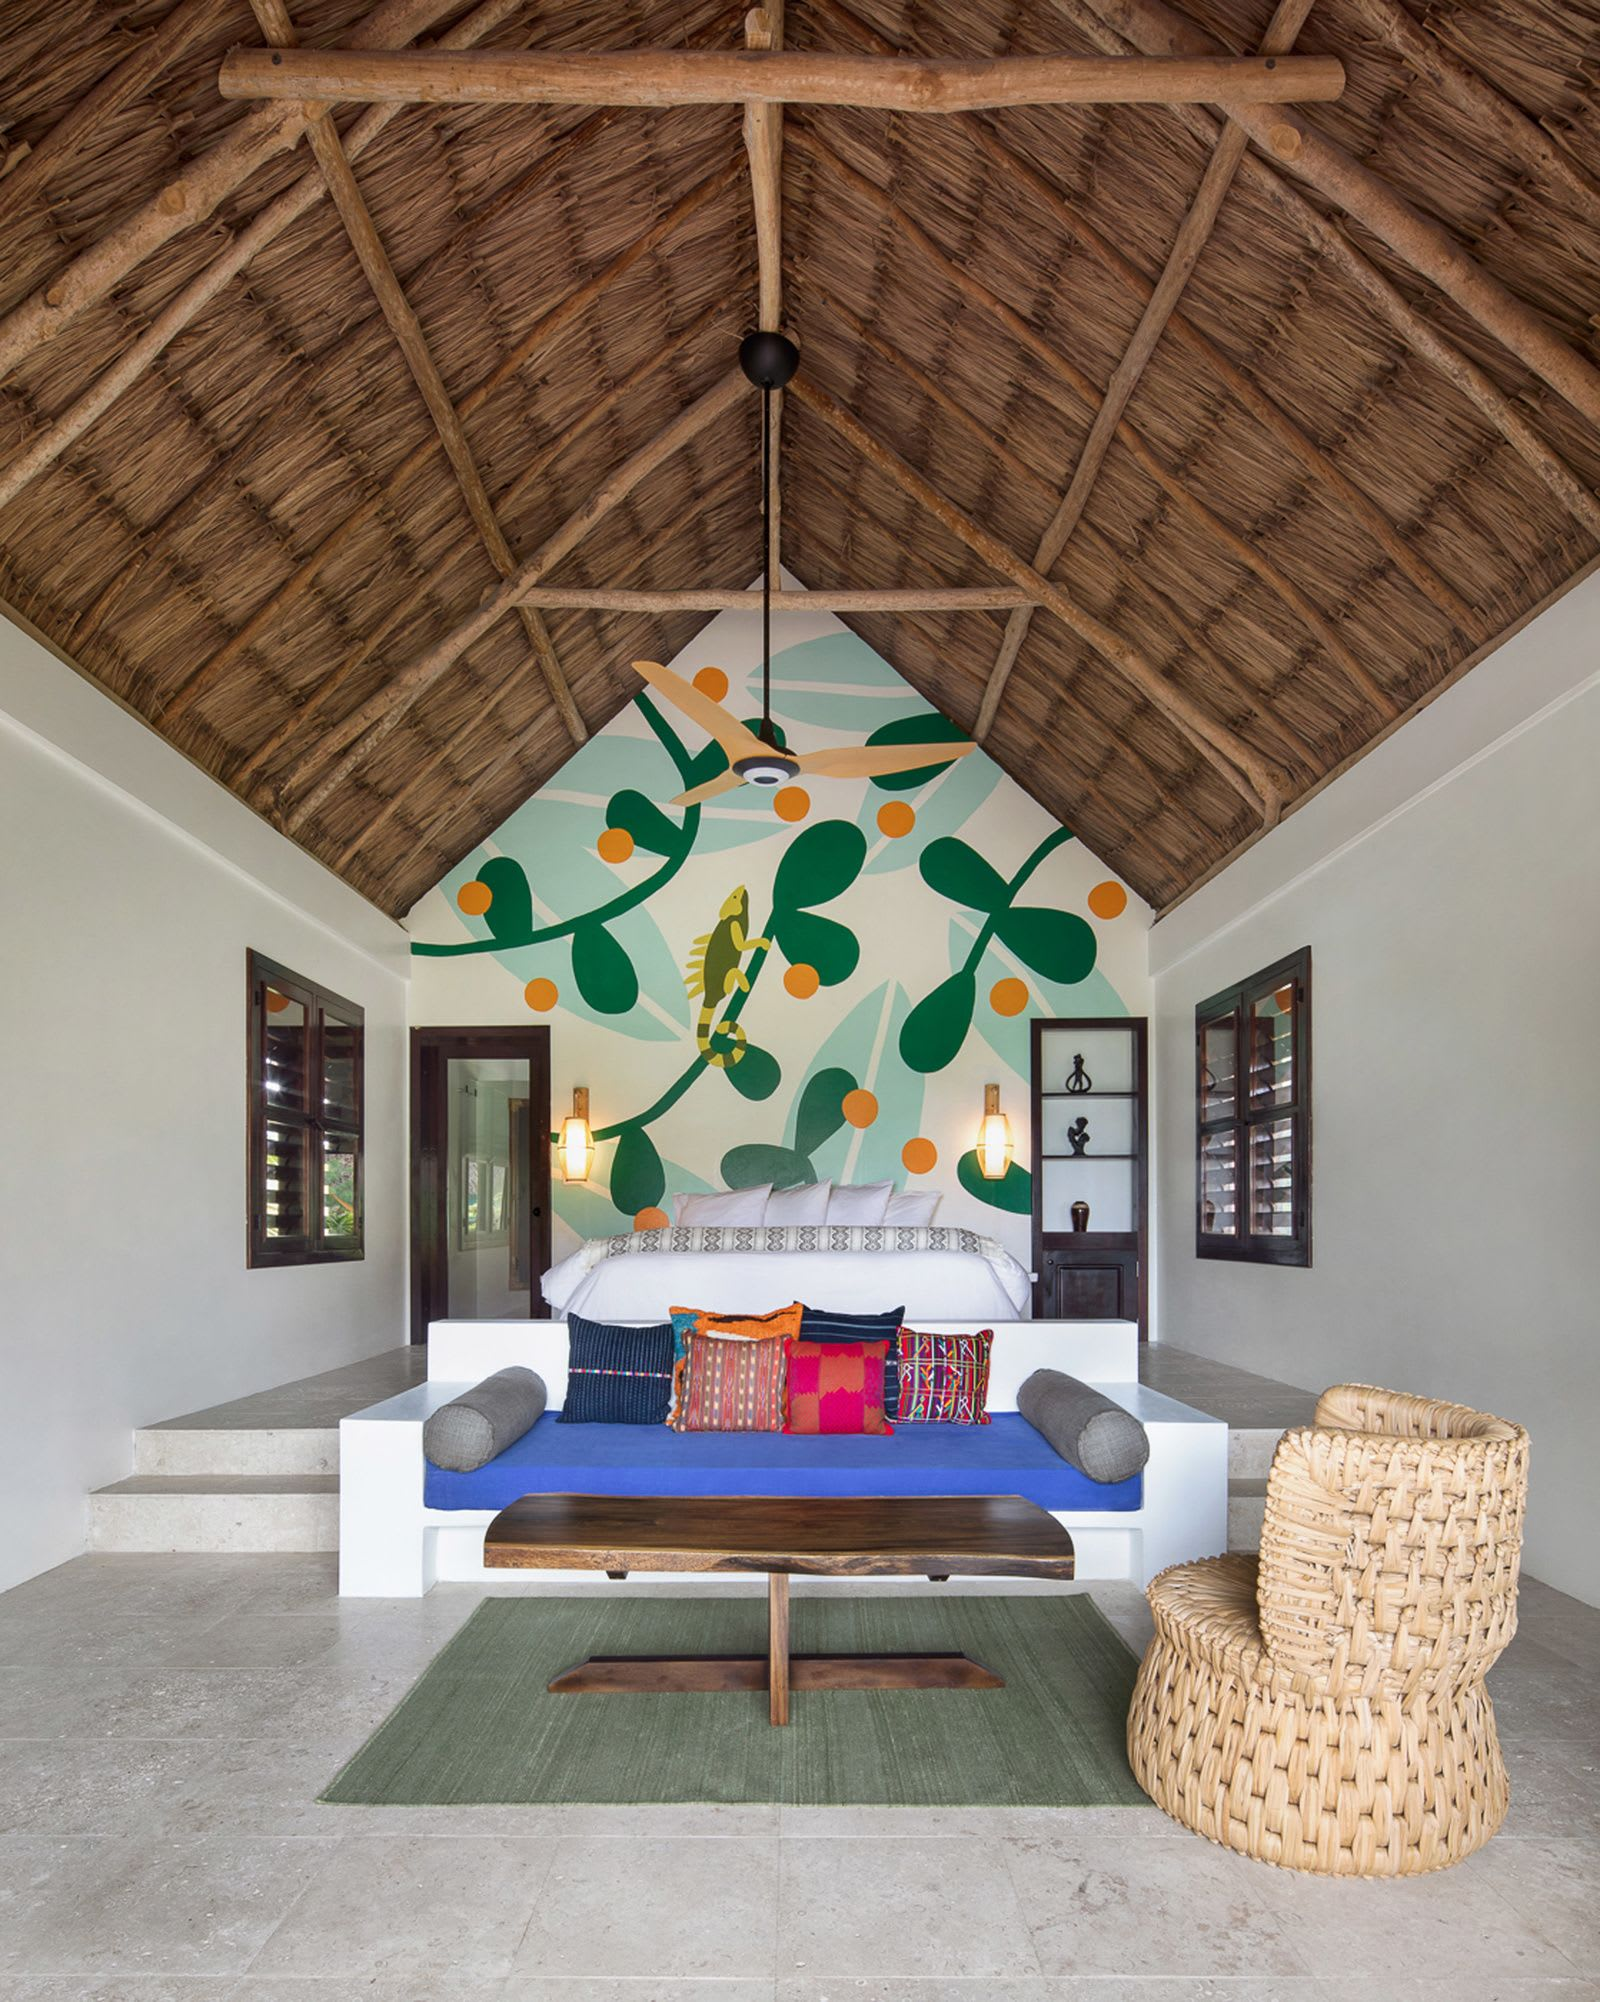 Murals by Cecile Gariepy seen at Matachica Resort Belize, Ambergris Caye - Matachica Murals